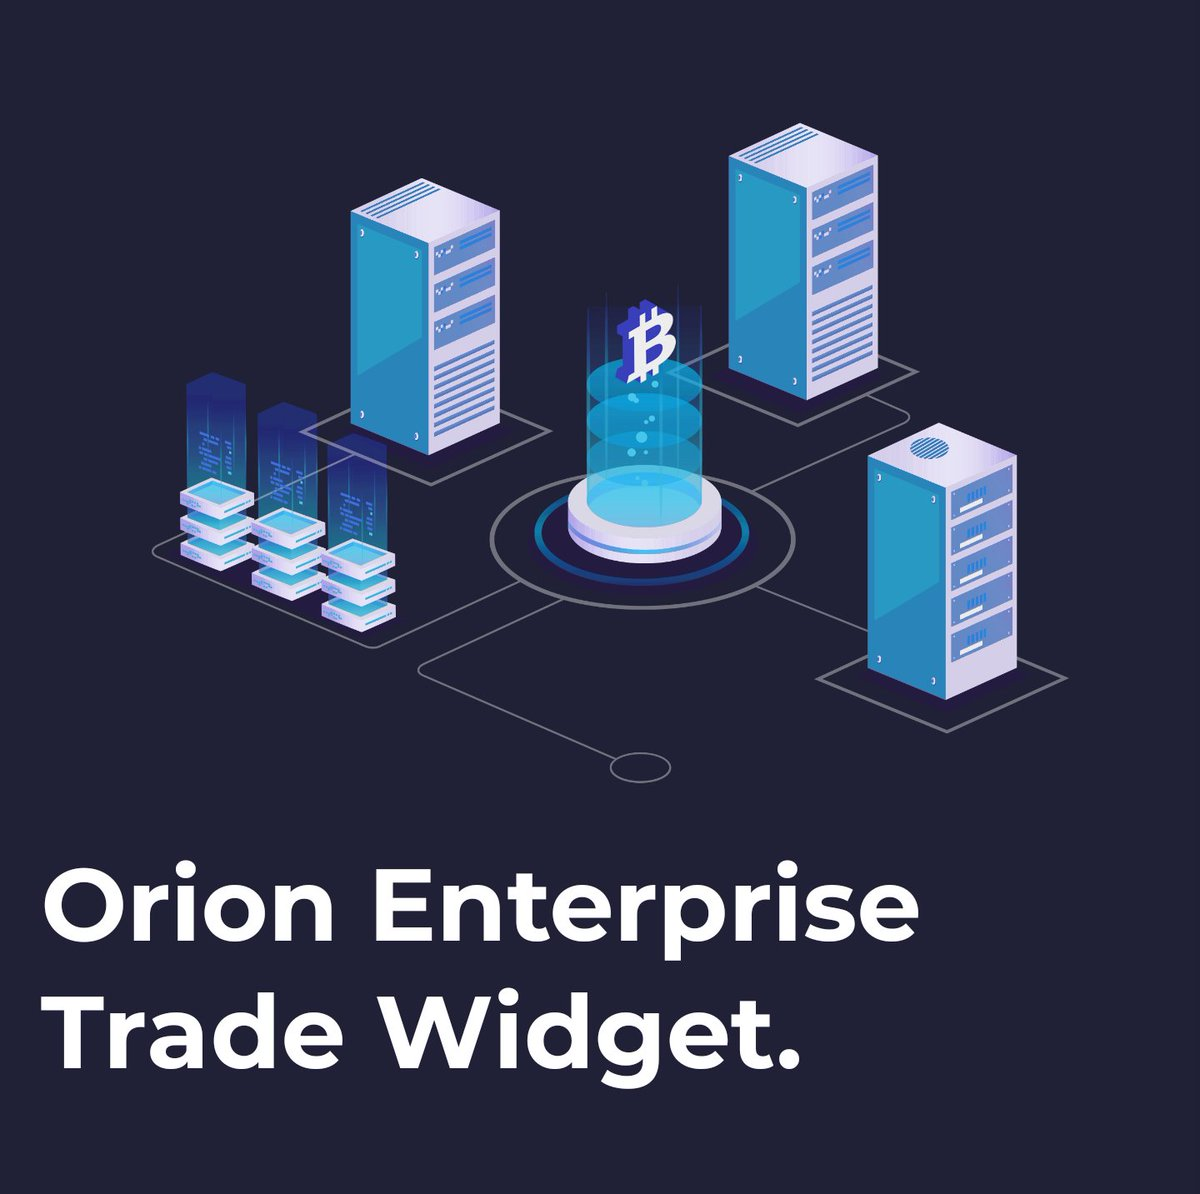 Access, opportunity. With our #Orion #Enterprise #Trade Widget, there is no need for non-#blockchain clients to visit exchanges. Find out more: orionprotocol.io/enterprisetrade